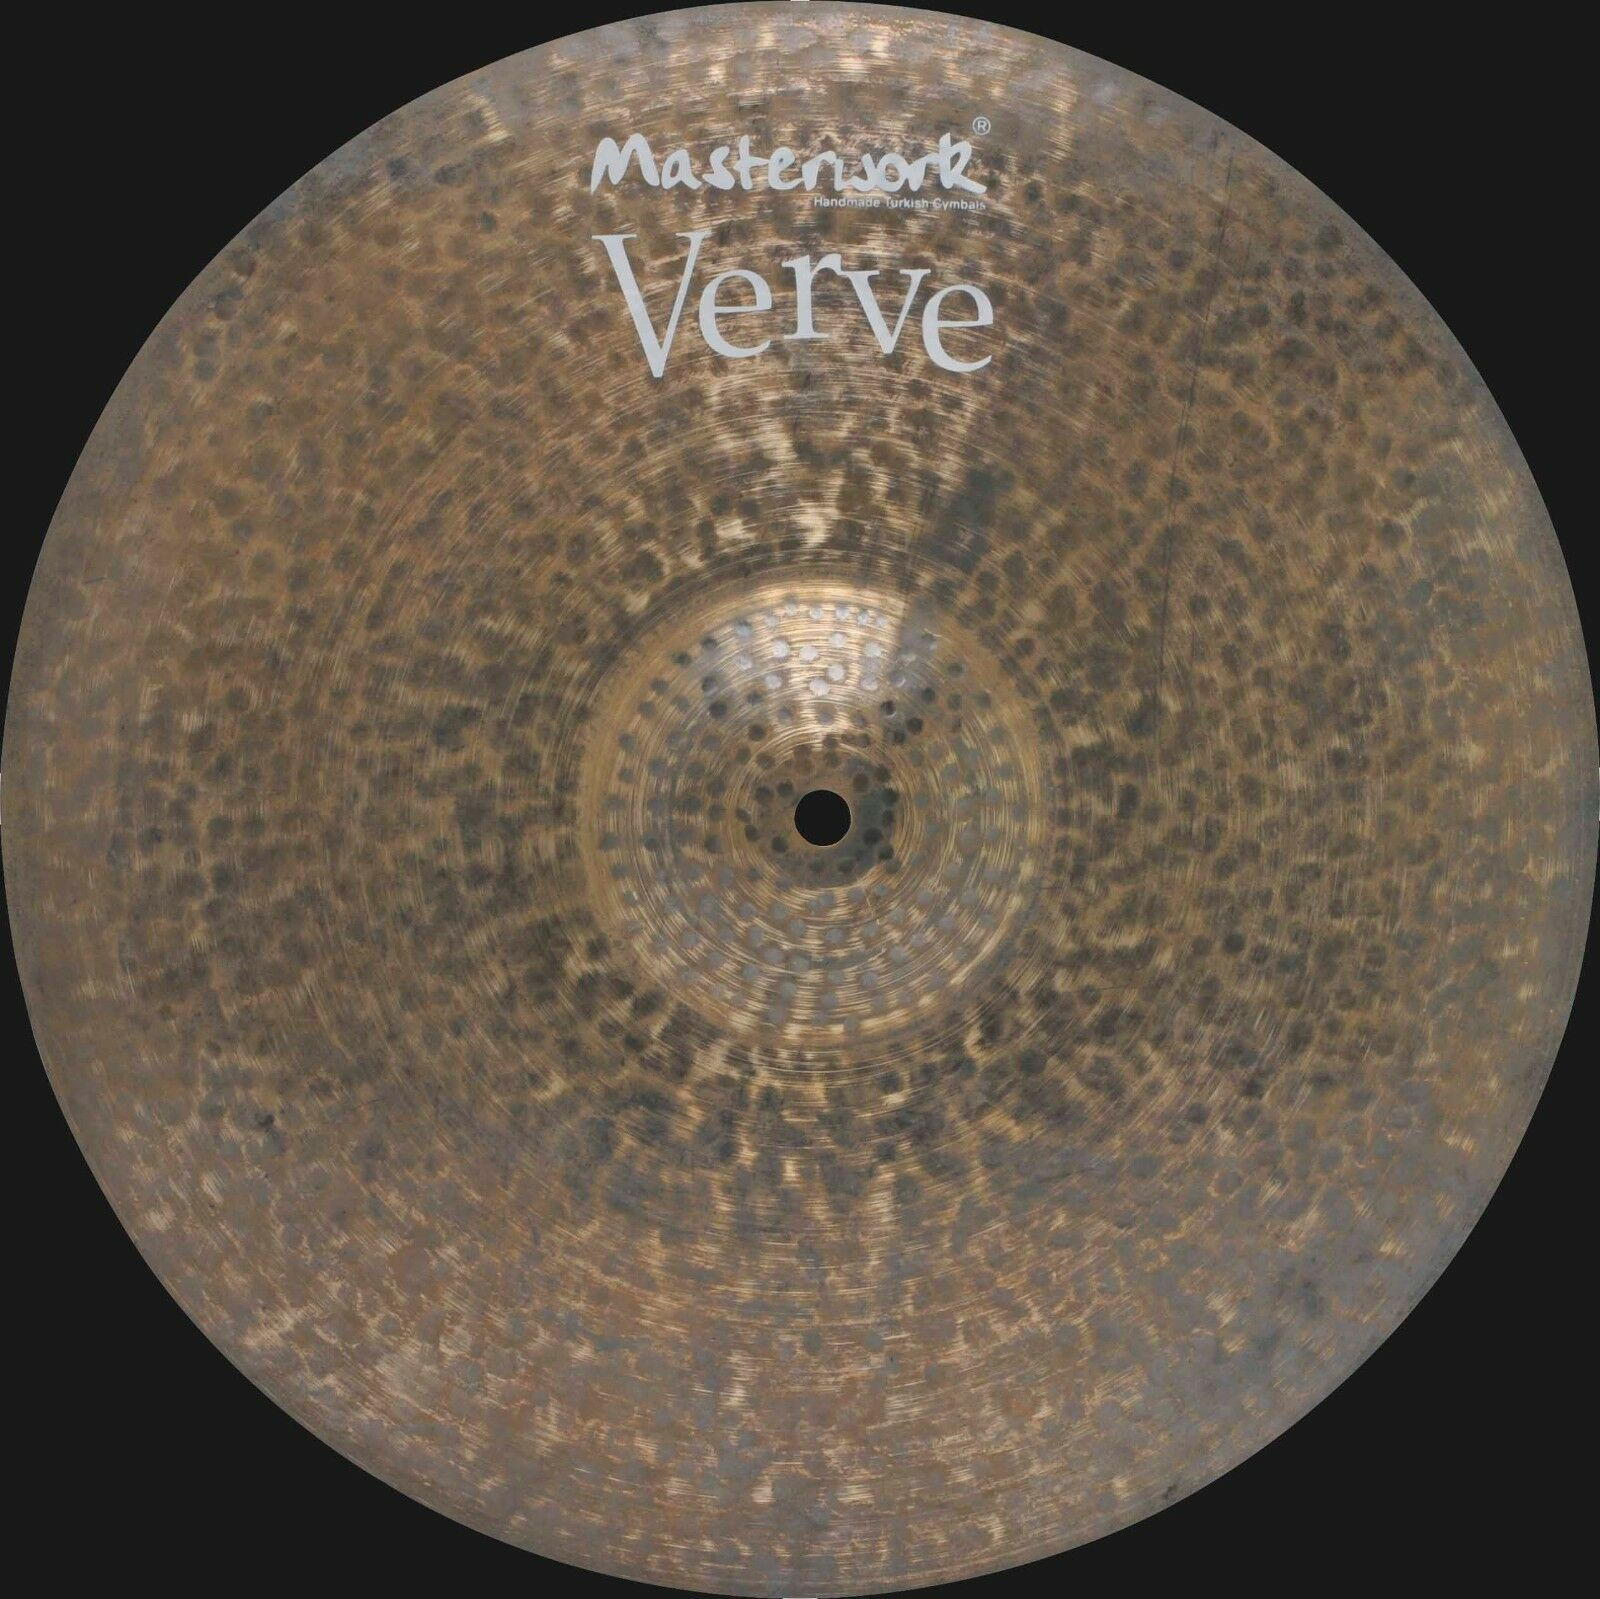 Masterwork Cymbals Jazz Series 16-inch Verve Crash Medium